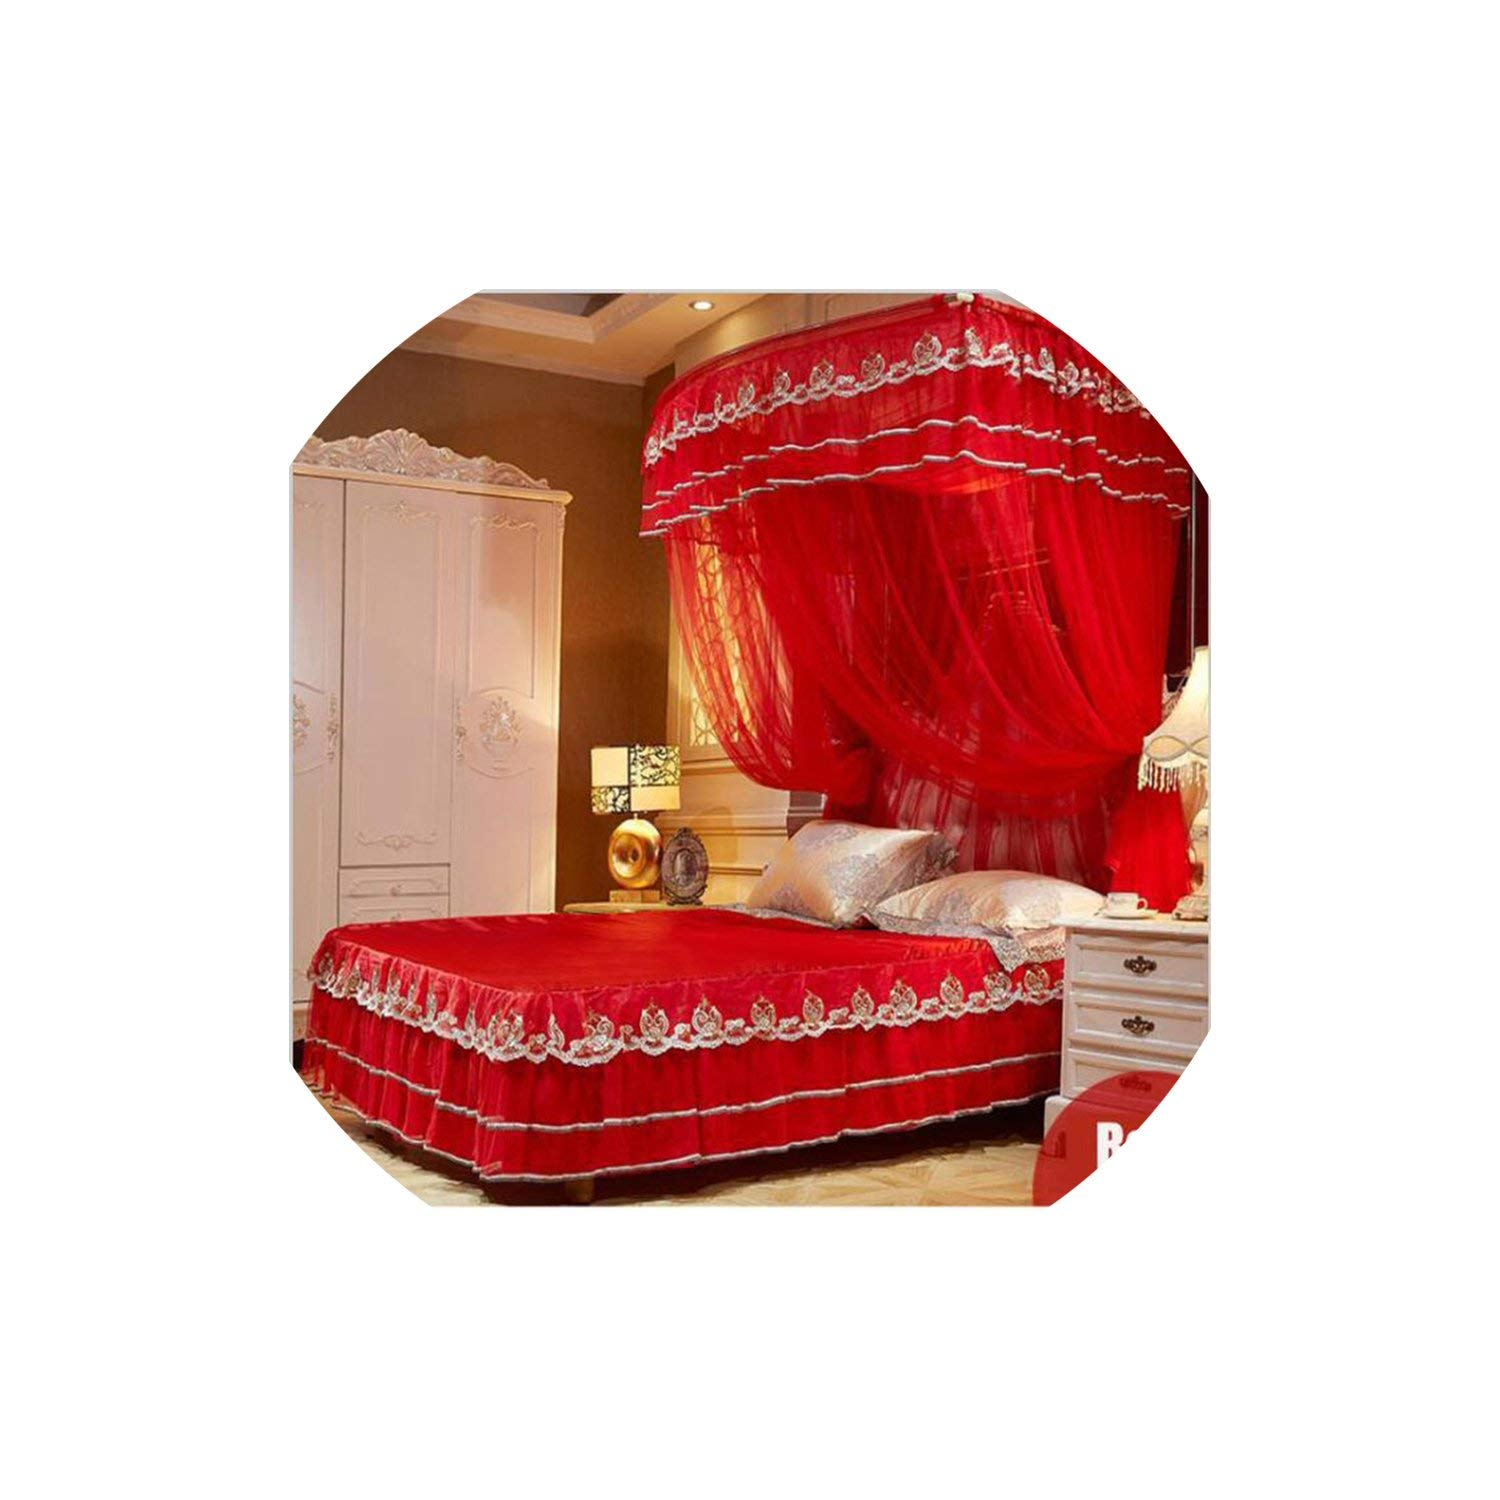 Fishing Rod Retractable Mosquito Net Multi Size Wedding Lace Mosquito Net 50D Encryption Soft Yarn Nice Bed Decor,Red,1.5Mwx2Mlx2.1Mh by special shine-shop mosquito net (Image #1)